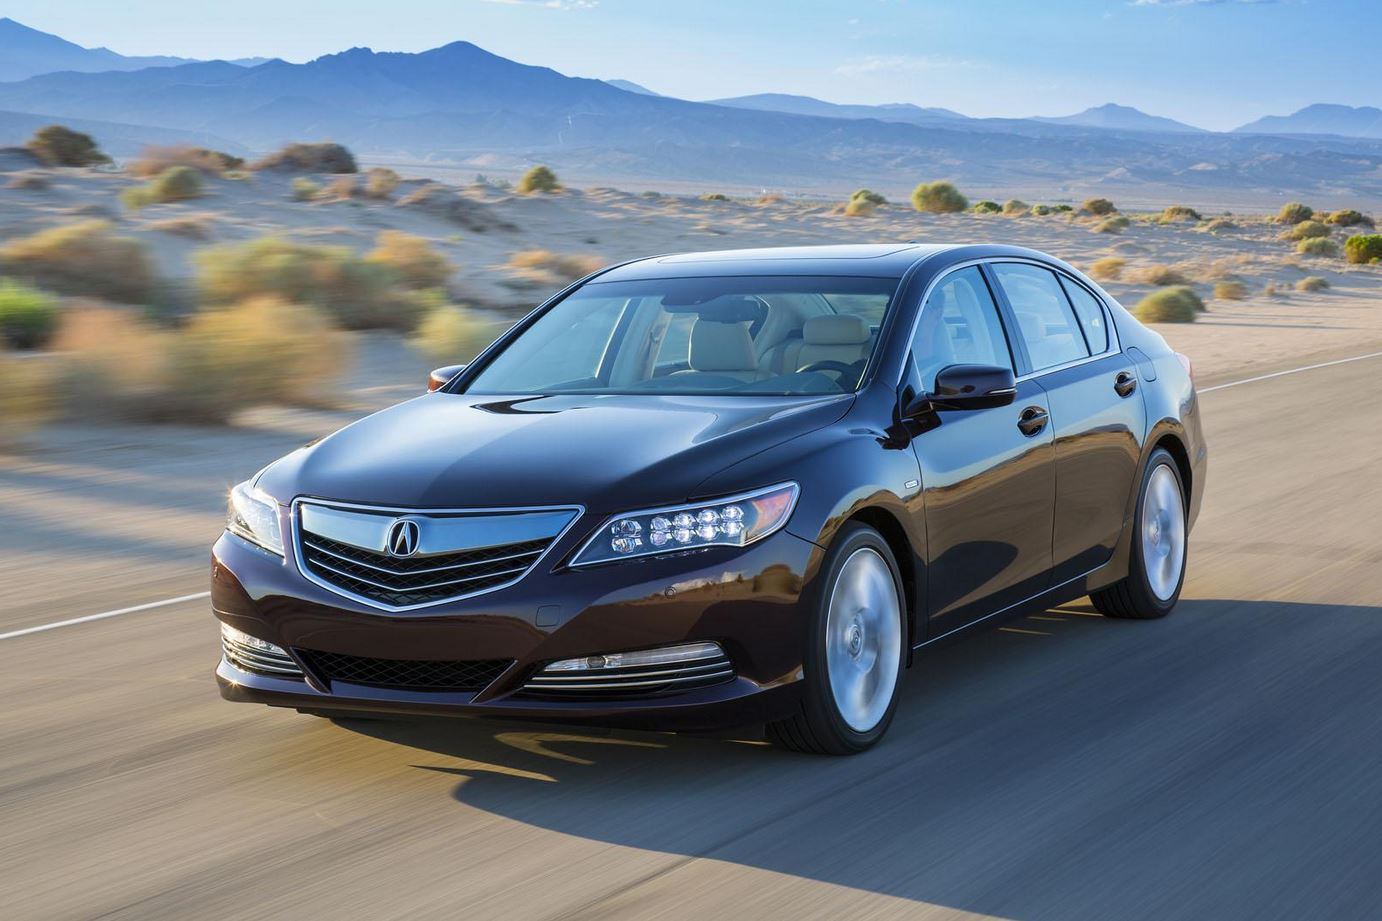 2014 acura rlx sport hybrid finally hits the market. Black Bedroom Furniture Sets. Home Design Ideas